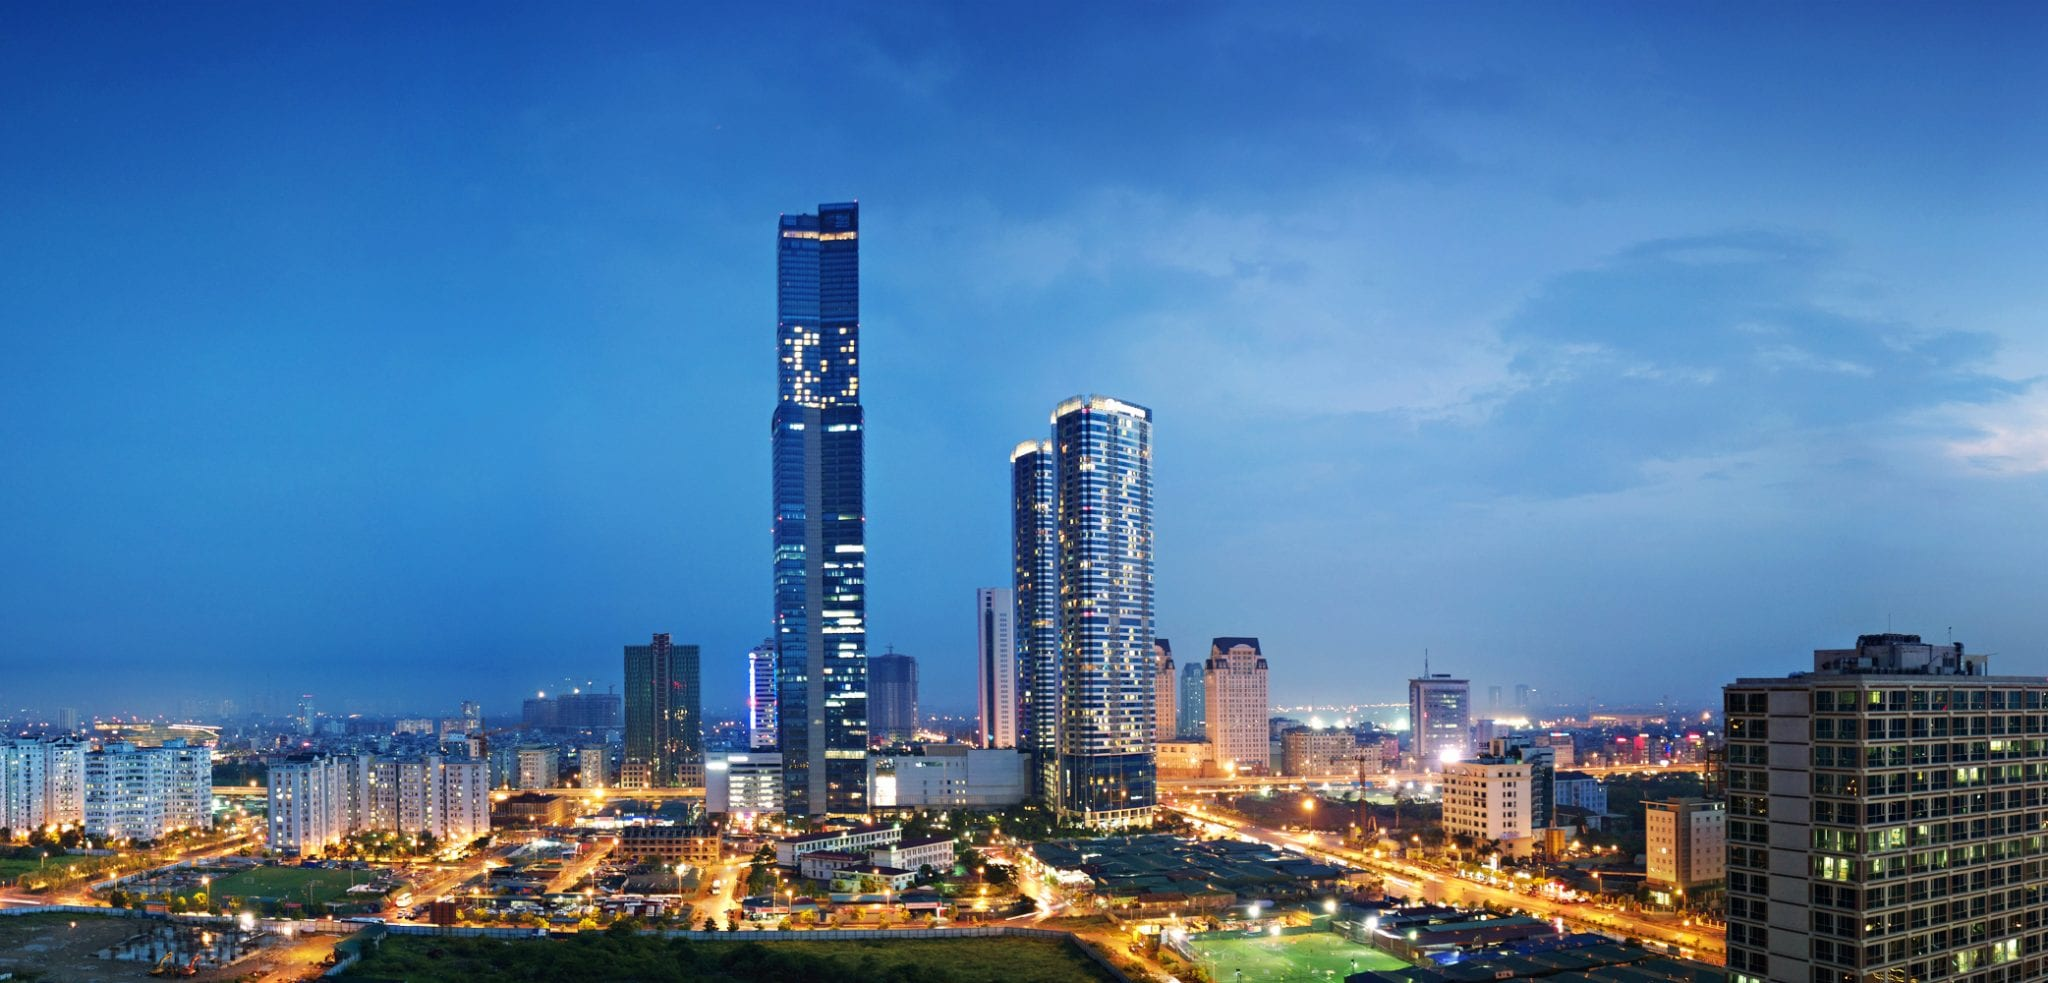 Image of the Keangnam Landmark 72 and residential towers at night in Hanoi, Vietnam